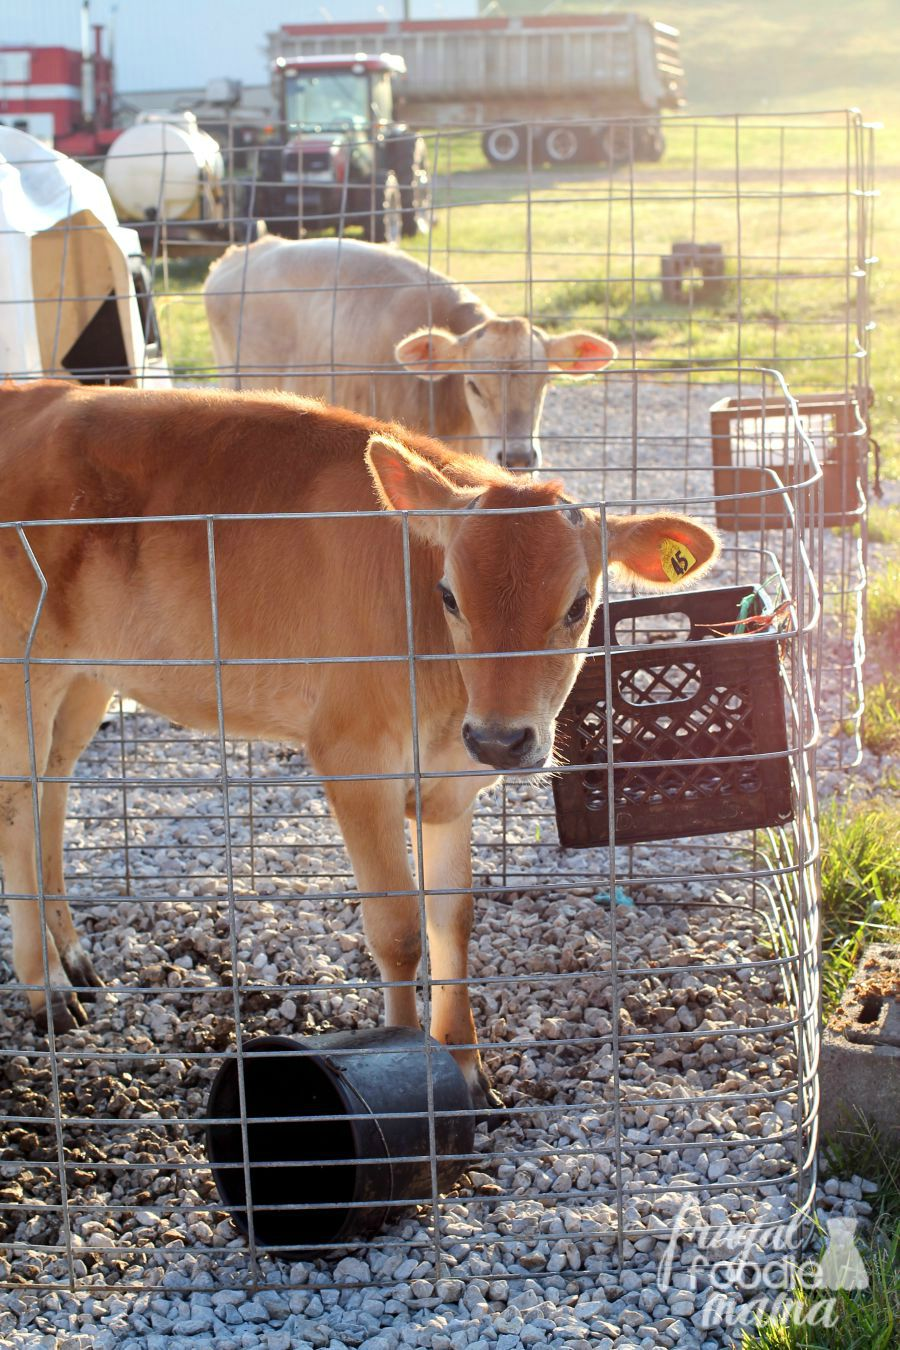 A Dairy Farm As A Technological System Teaching Practice: Frugal Foodie Mama: My Ohio Dairy Adventure